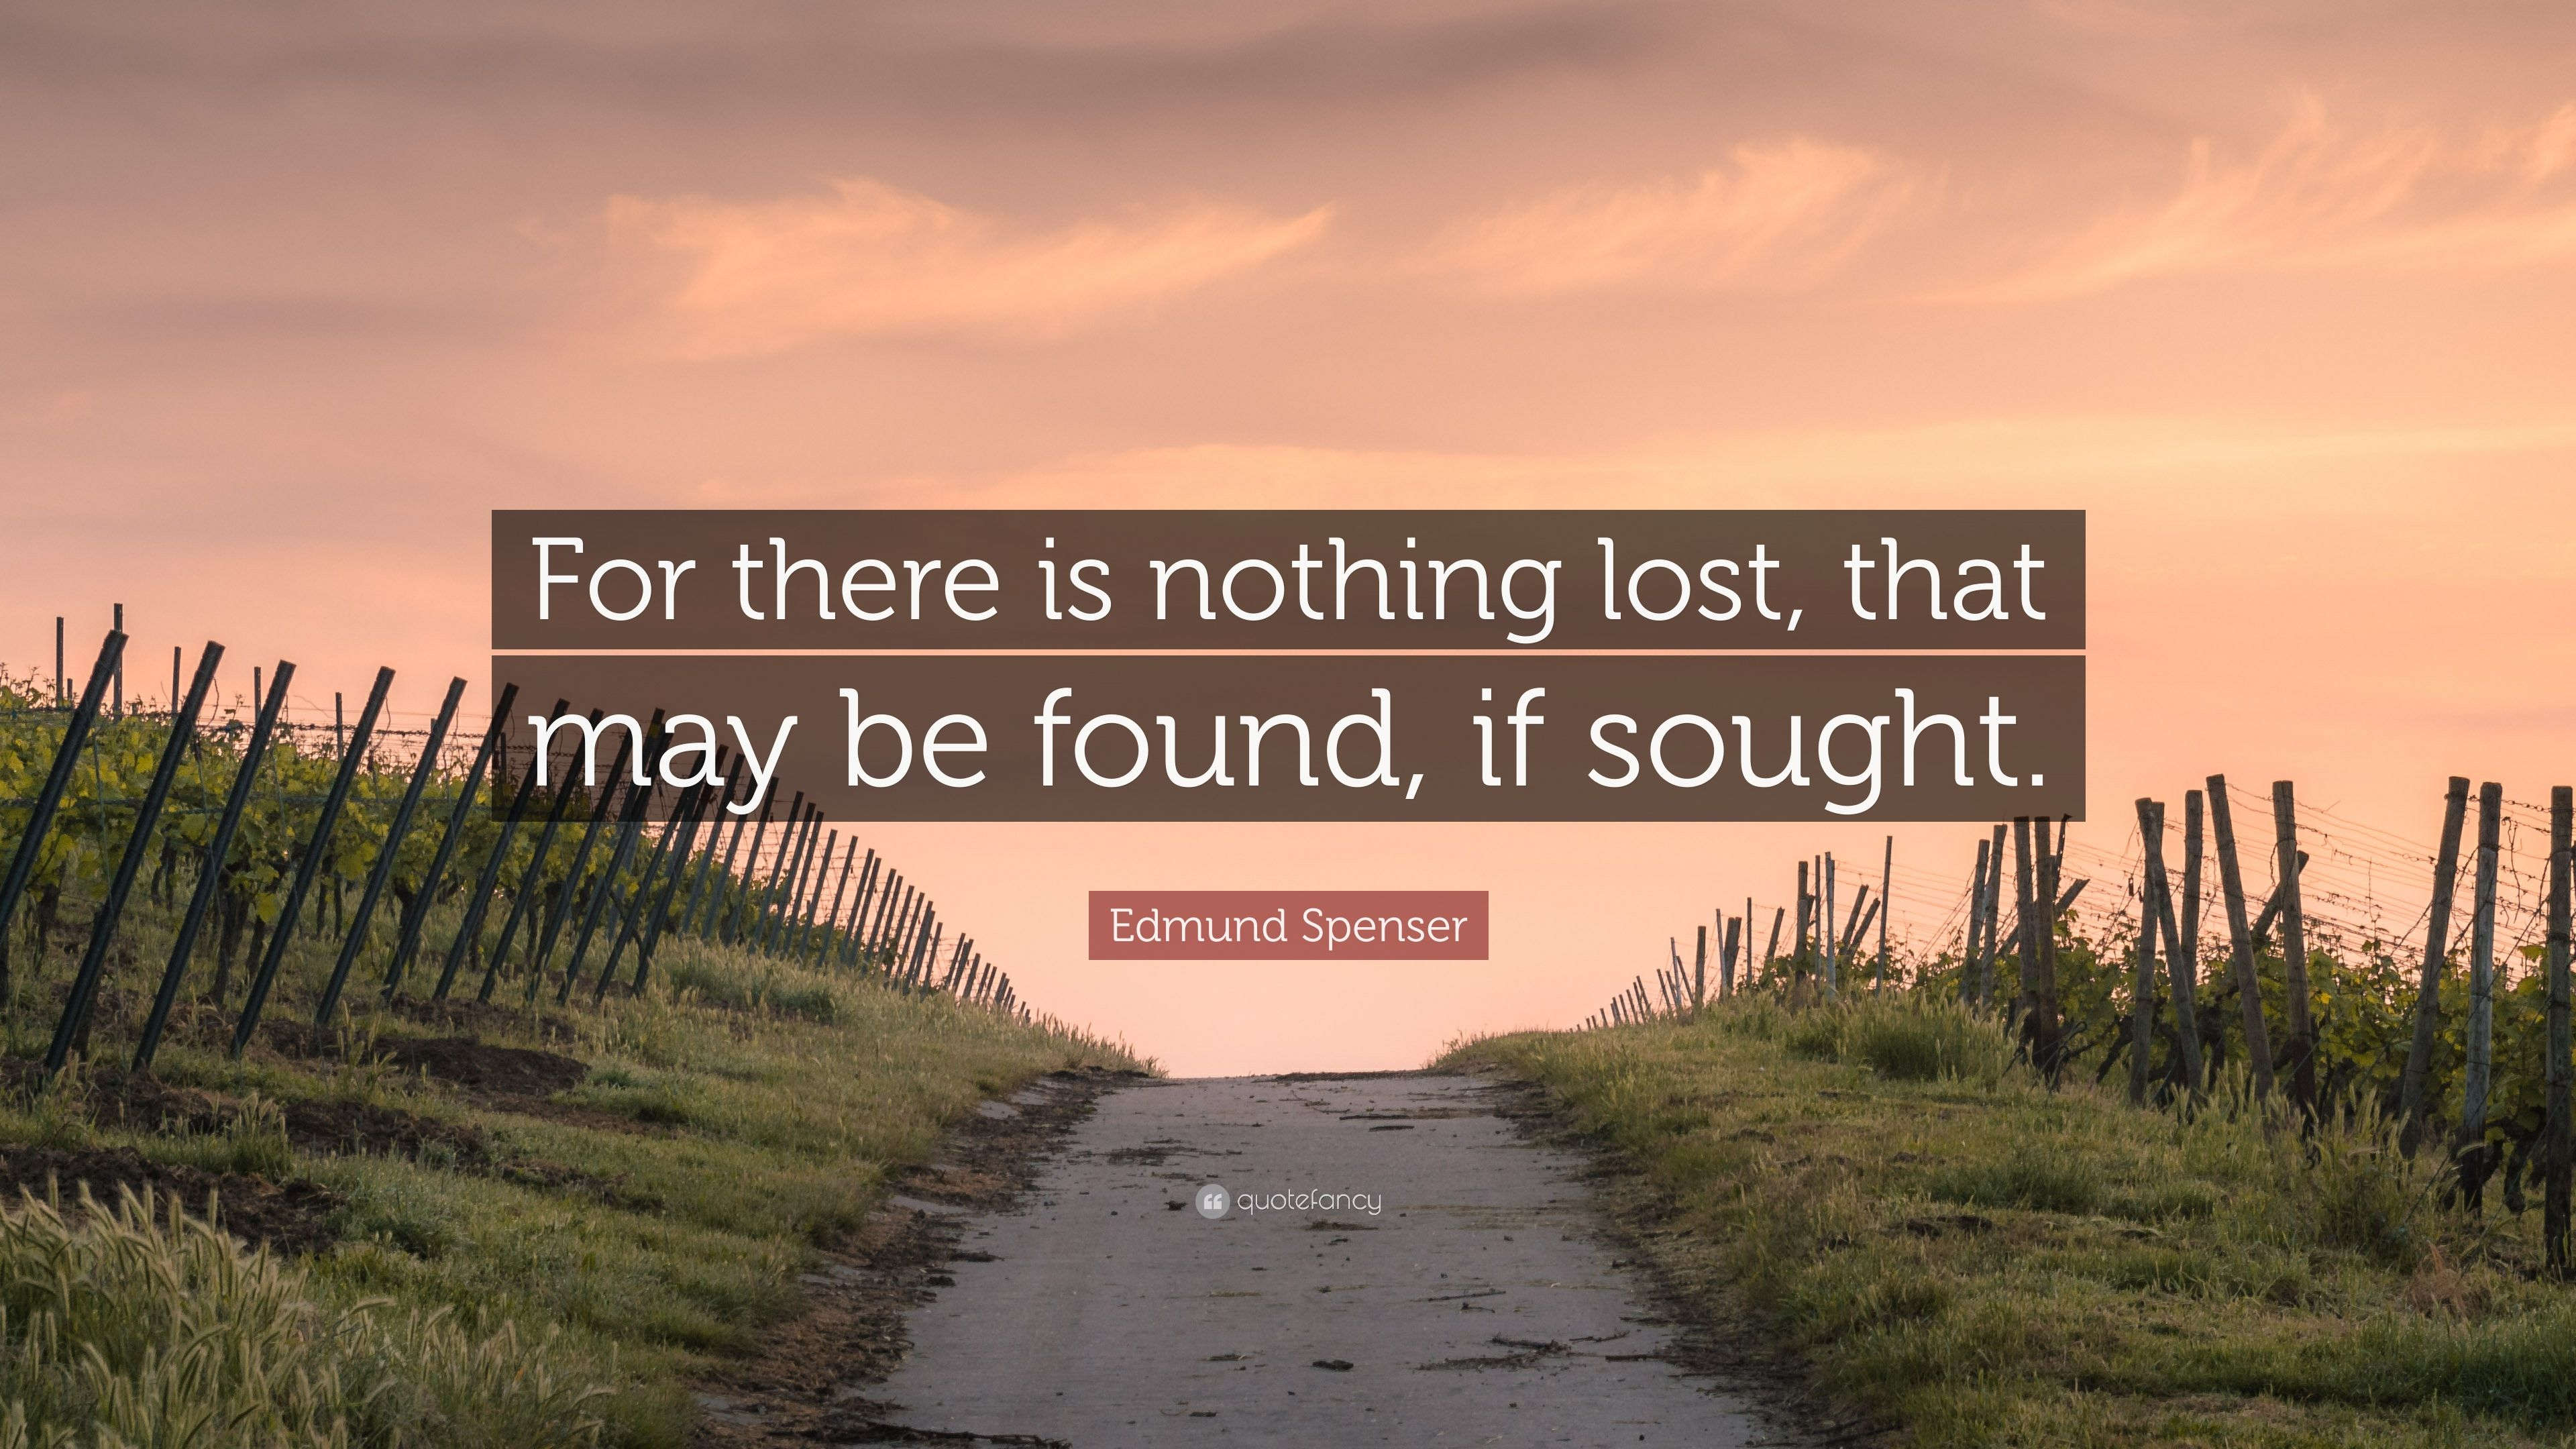 for there is nothing lost that may be found